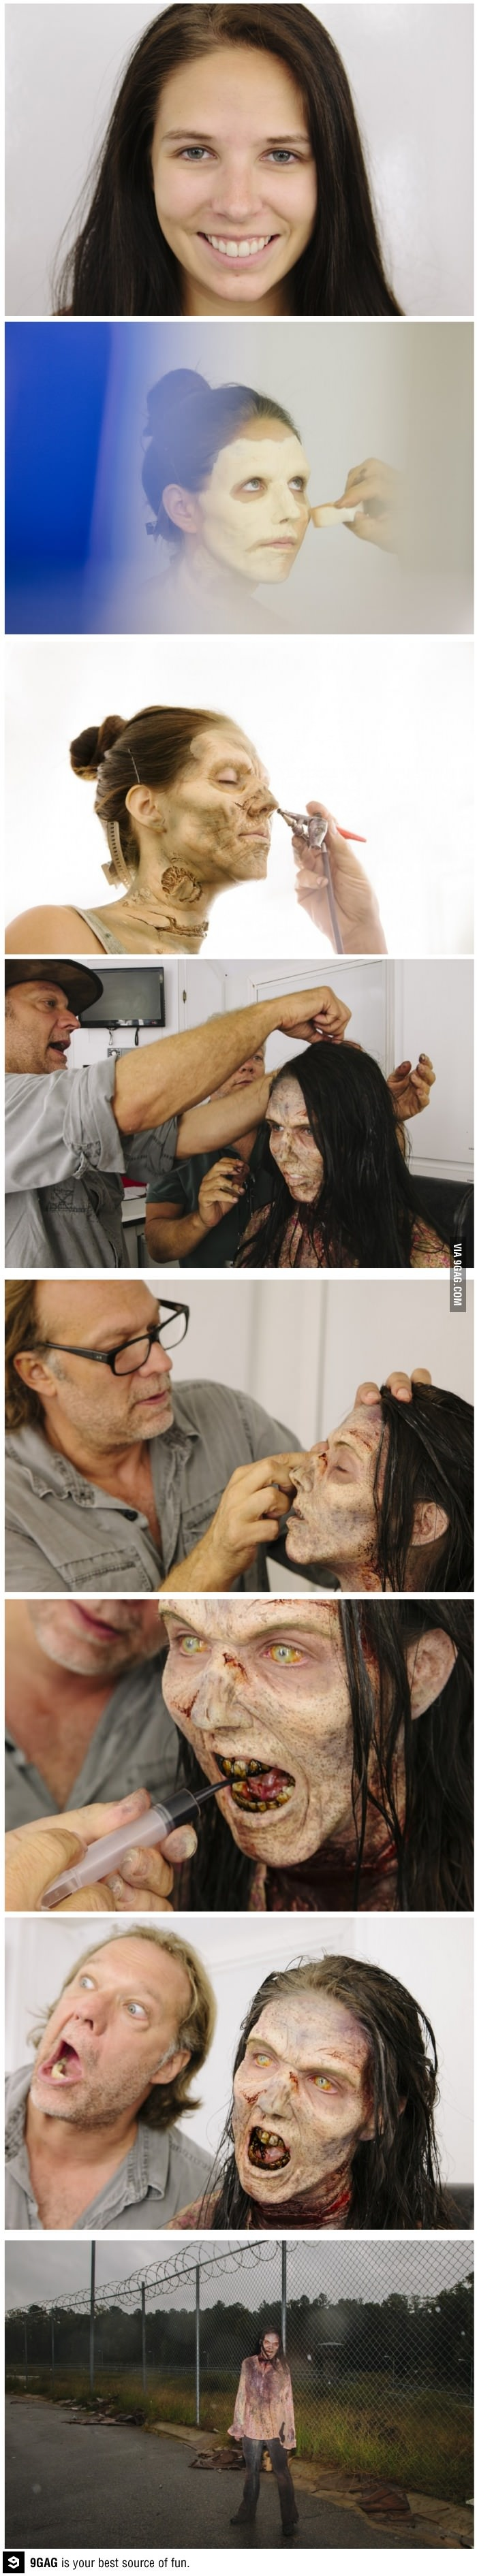 the walking dead makeup...awesome every time i see this.